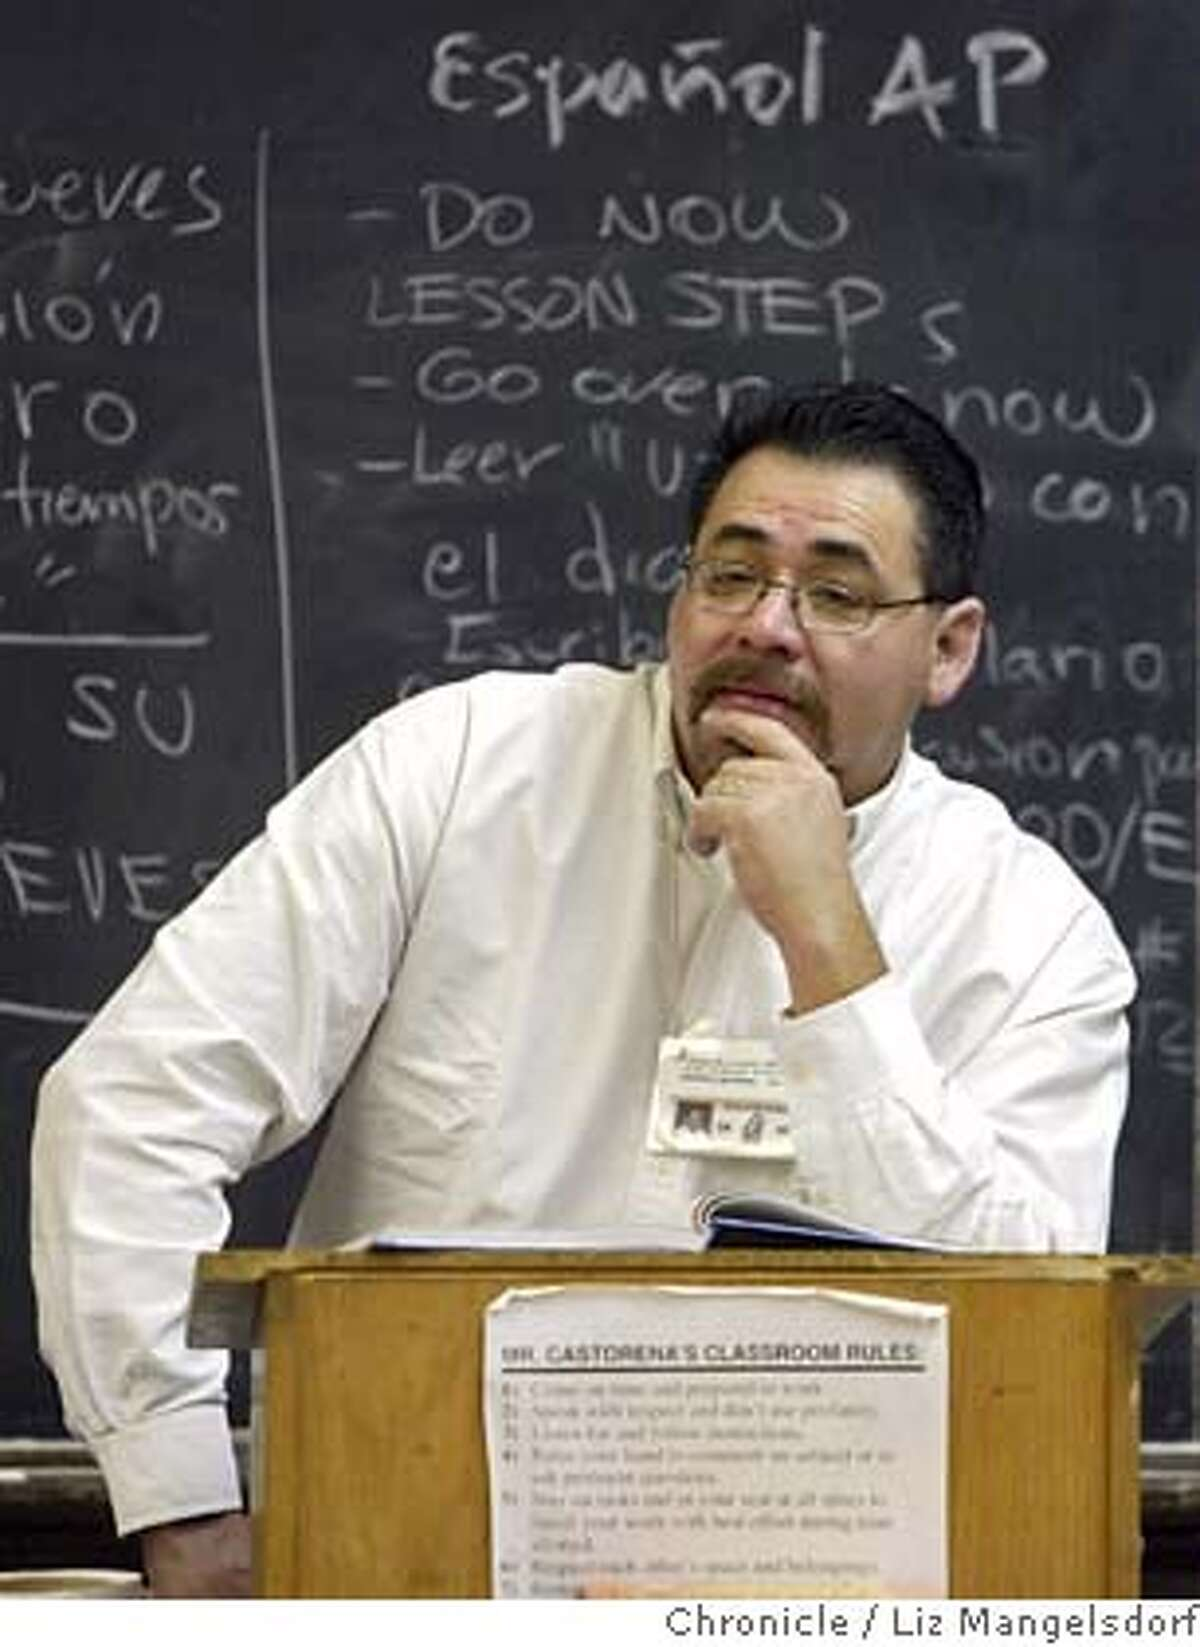 balboa27_330_lm.JPG Event on 1/26/05 in San Francisco. Teacher Lalo Castorena listens to students in his AP Spanish 2 class. Story on Balboa High School, and their work to get more students into Advanced Placement courses. They start in 9th and 10th grade with honor courses to prepare students for AP. Note that this is a file foto, but that photo dept. has checked and this guy is still teaching at Balboa and still teaching the same course as of 8/15/06. Liz Mangelsdorf / The Chronicle MANDATORY CREDIT FOR PHOTOG AND SF CHRONICLE/ -MAGS OUT